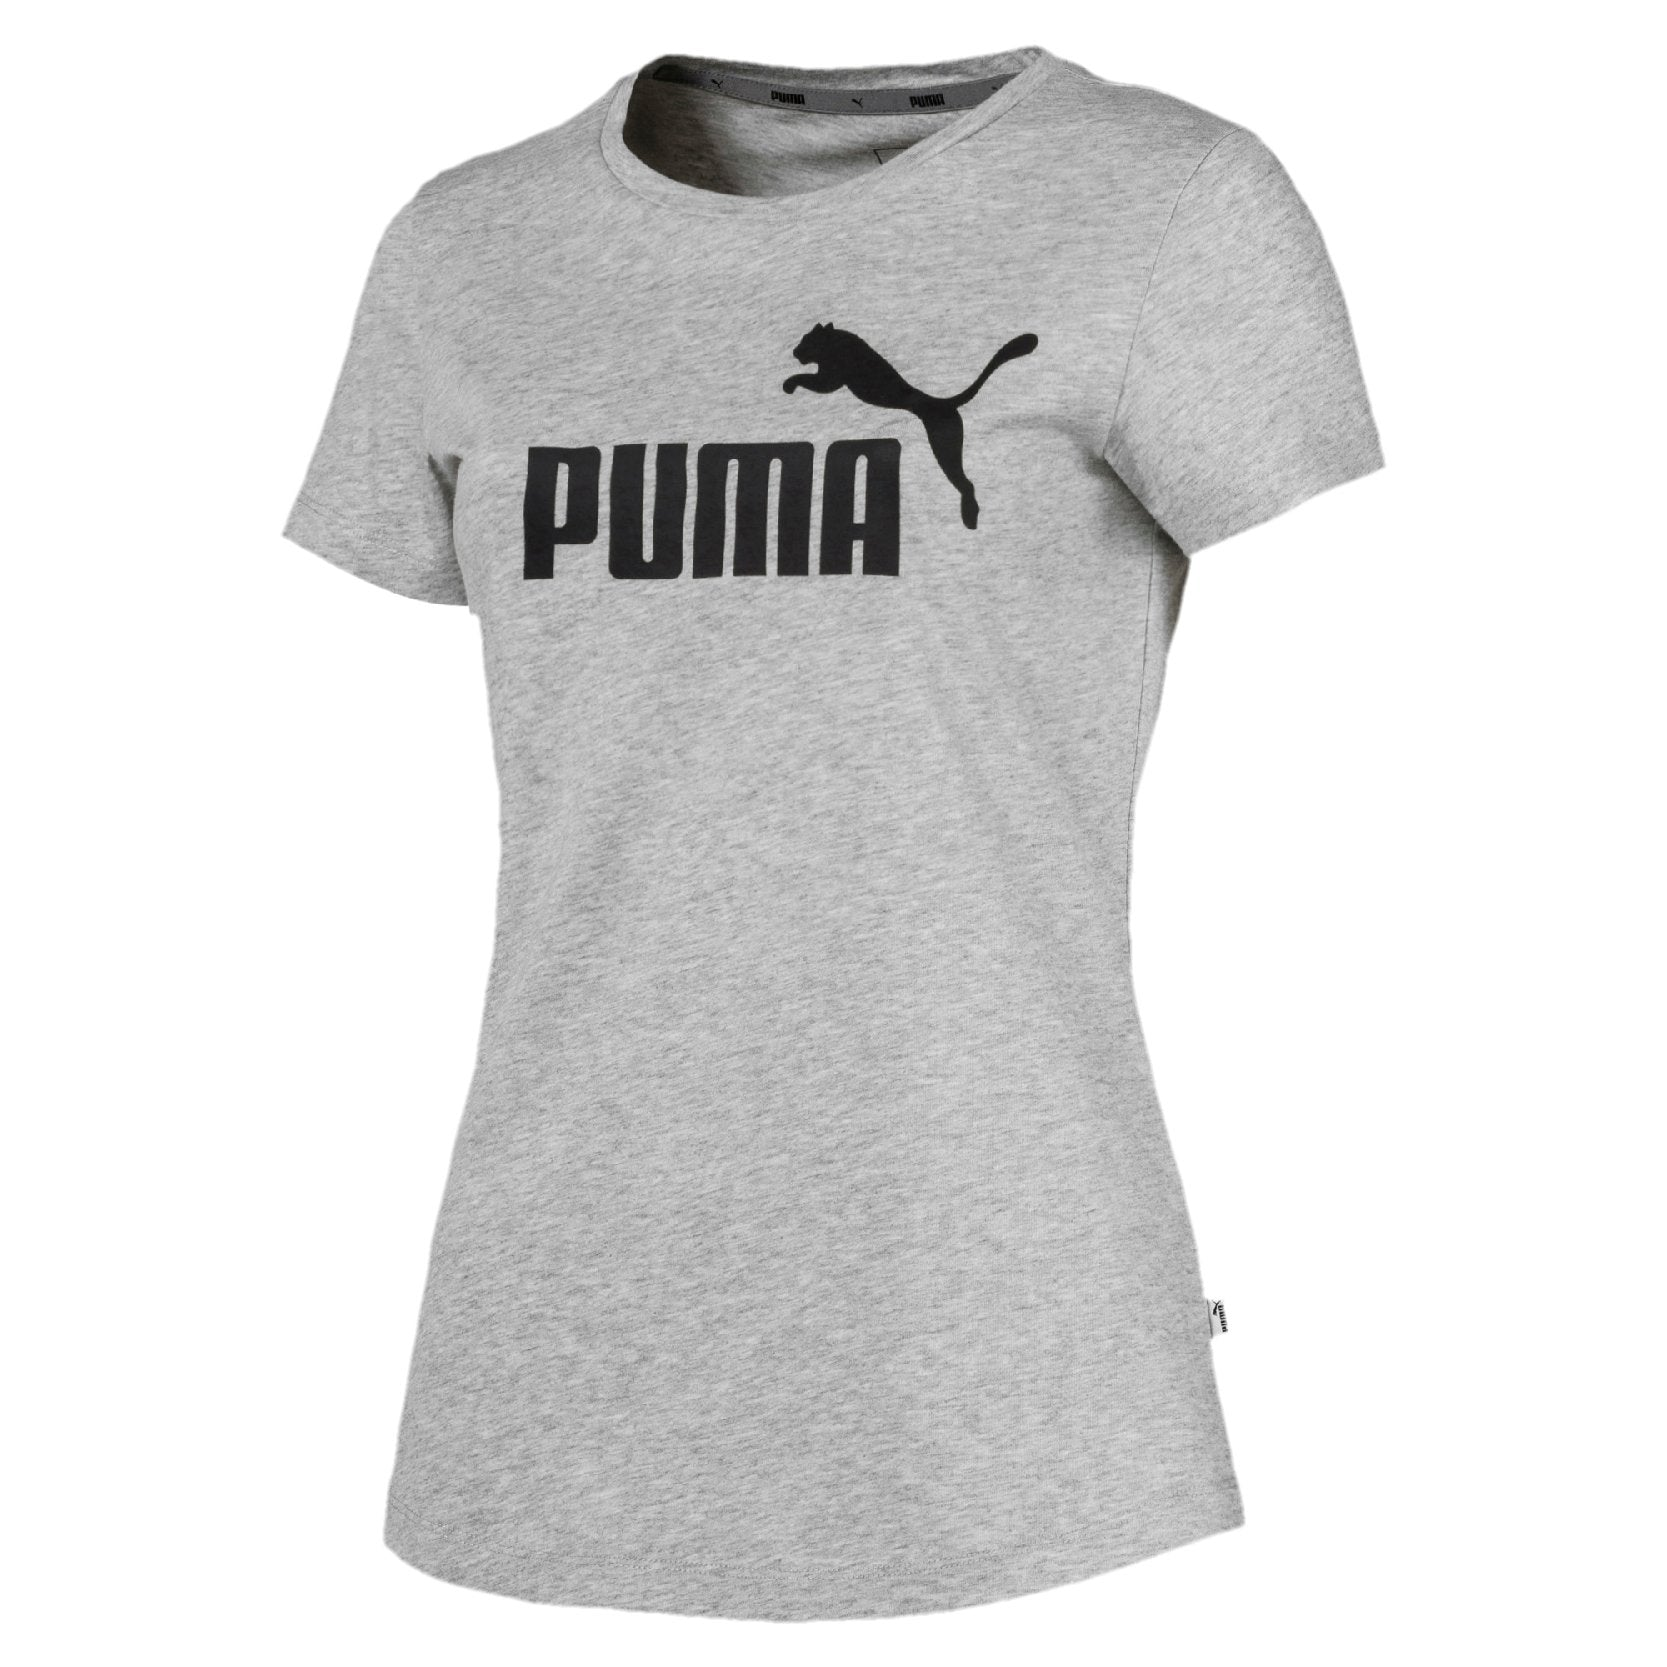 Puma Essentials Women's Logo Tee - Light Gray Heather SP-ApparelTees-Womens Puma